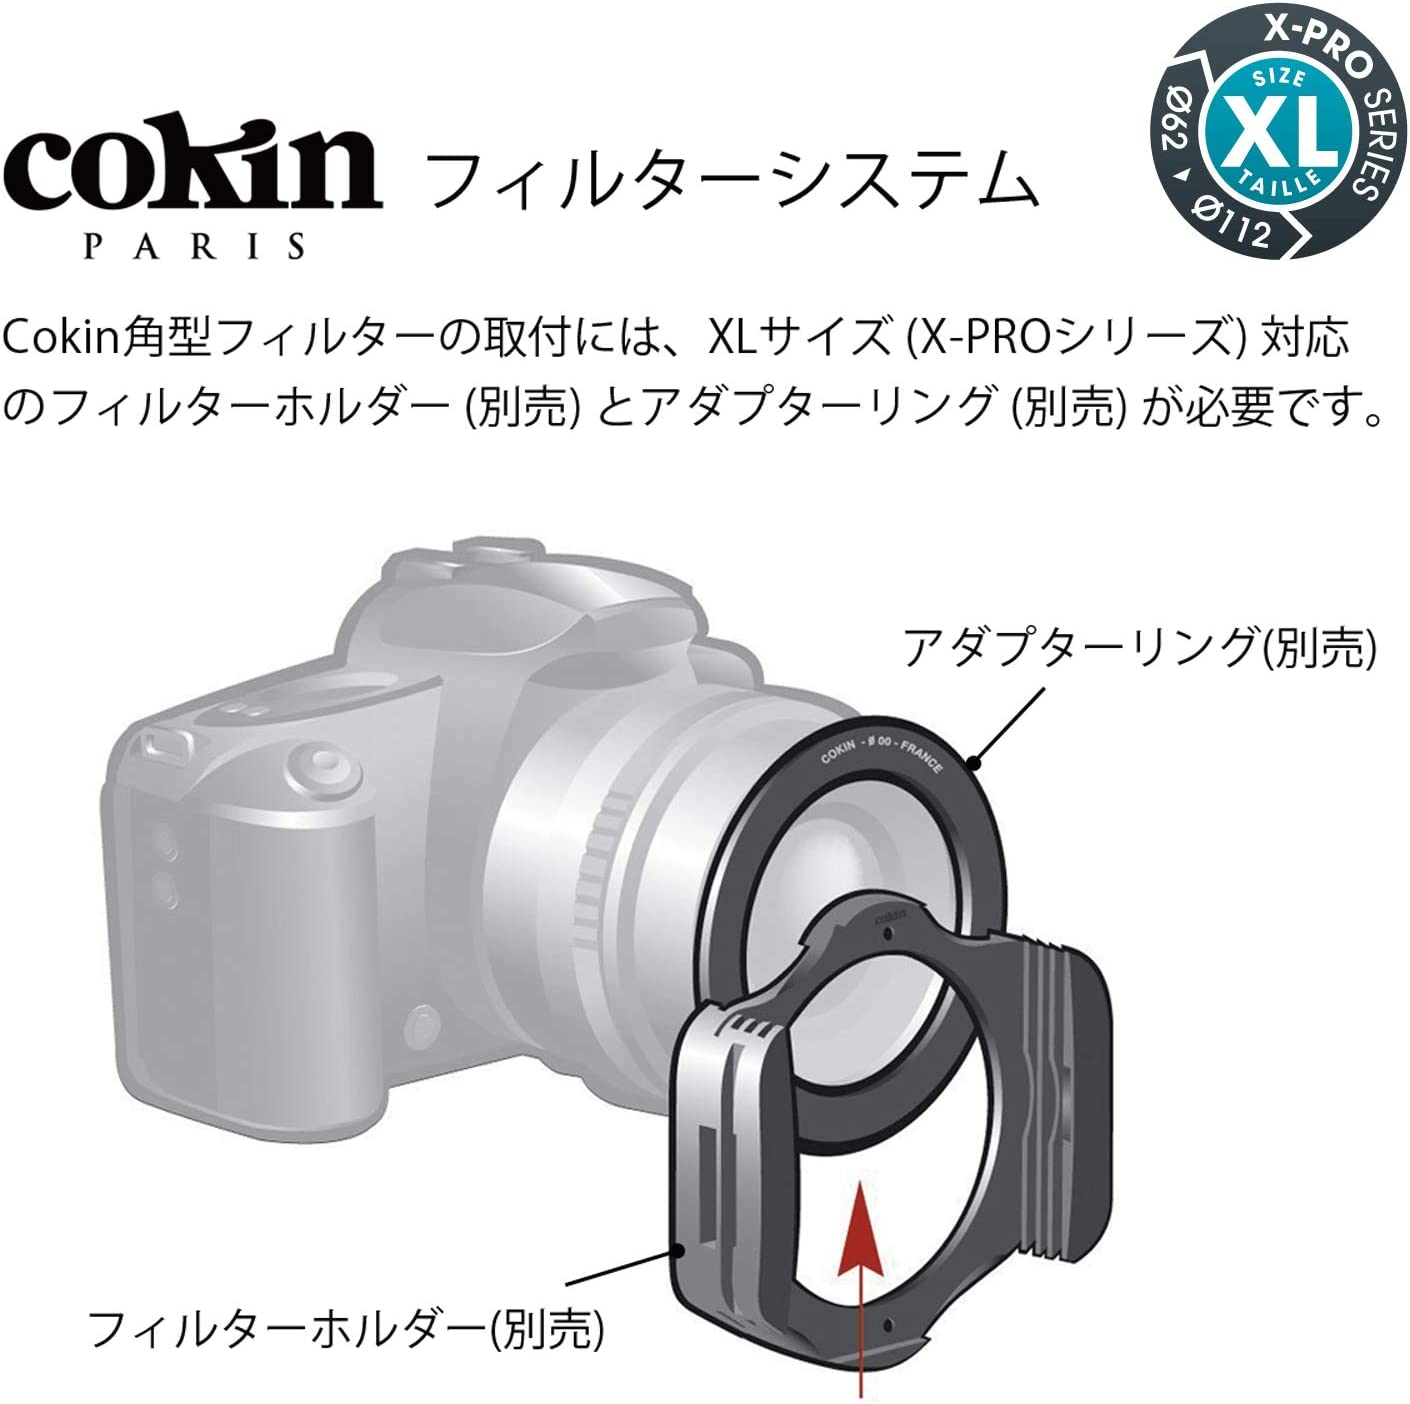 130mm X 170mm 2-Stop for XL Soft Cokin Square Graduated Tobacco T2 X Series Holder X125S